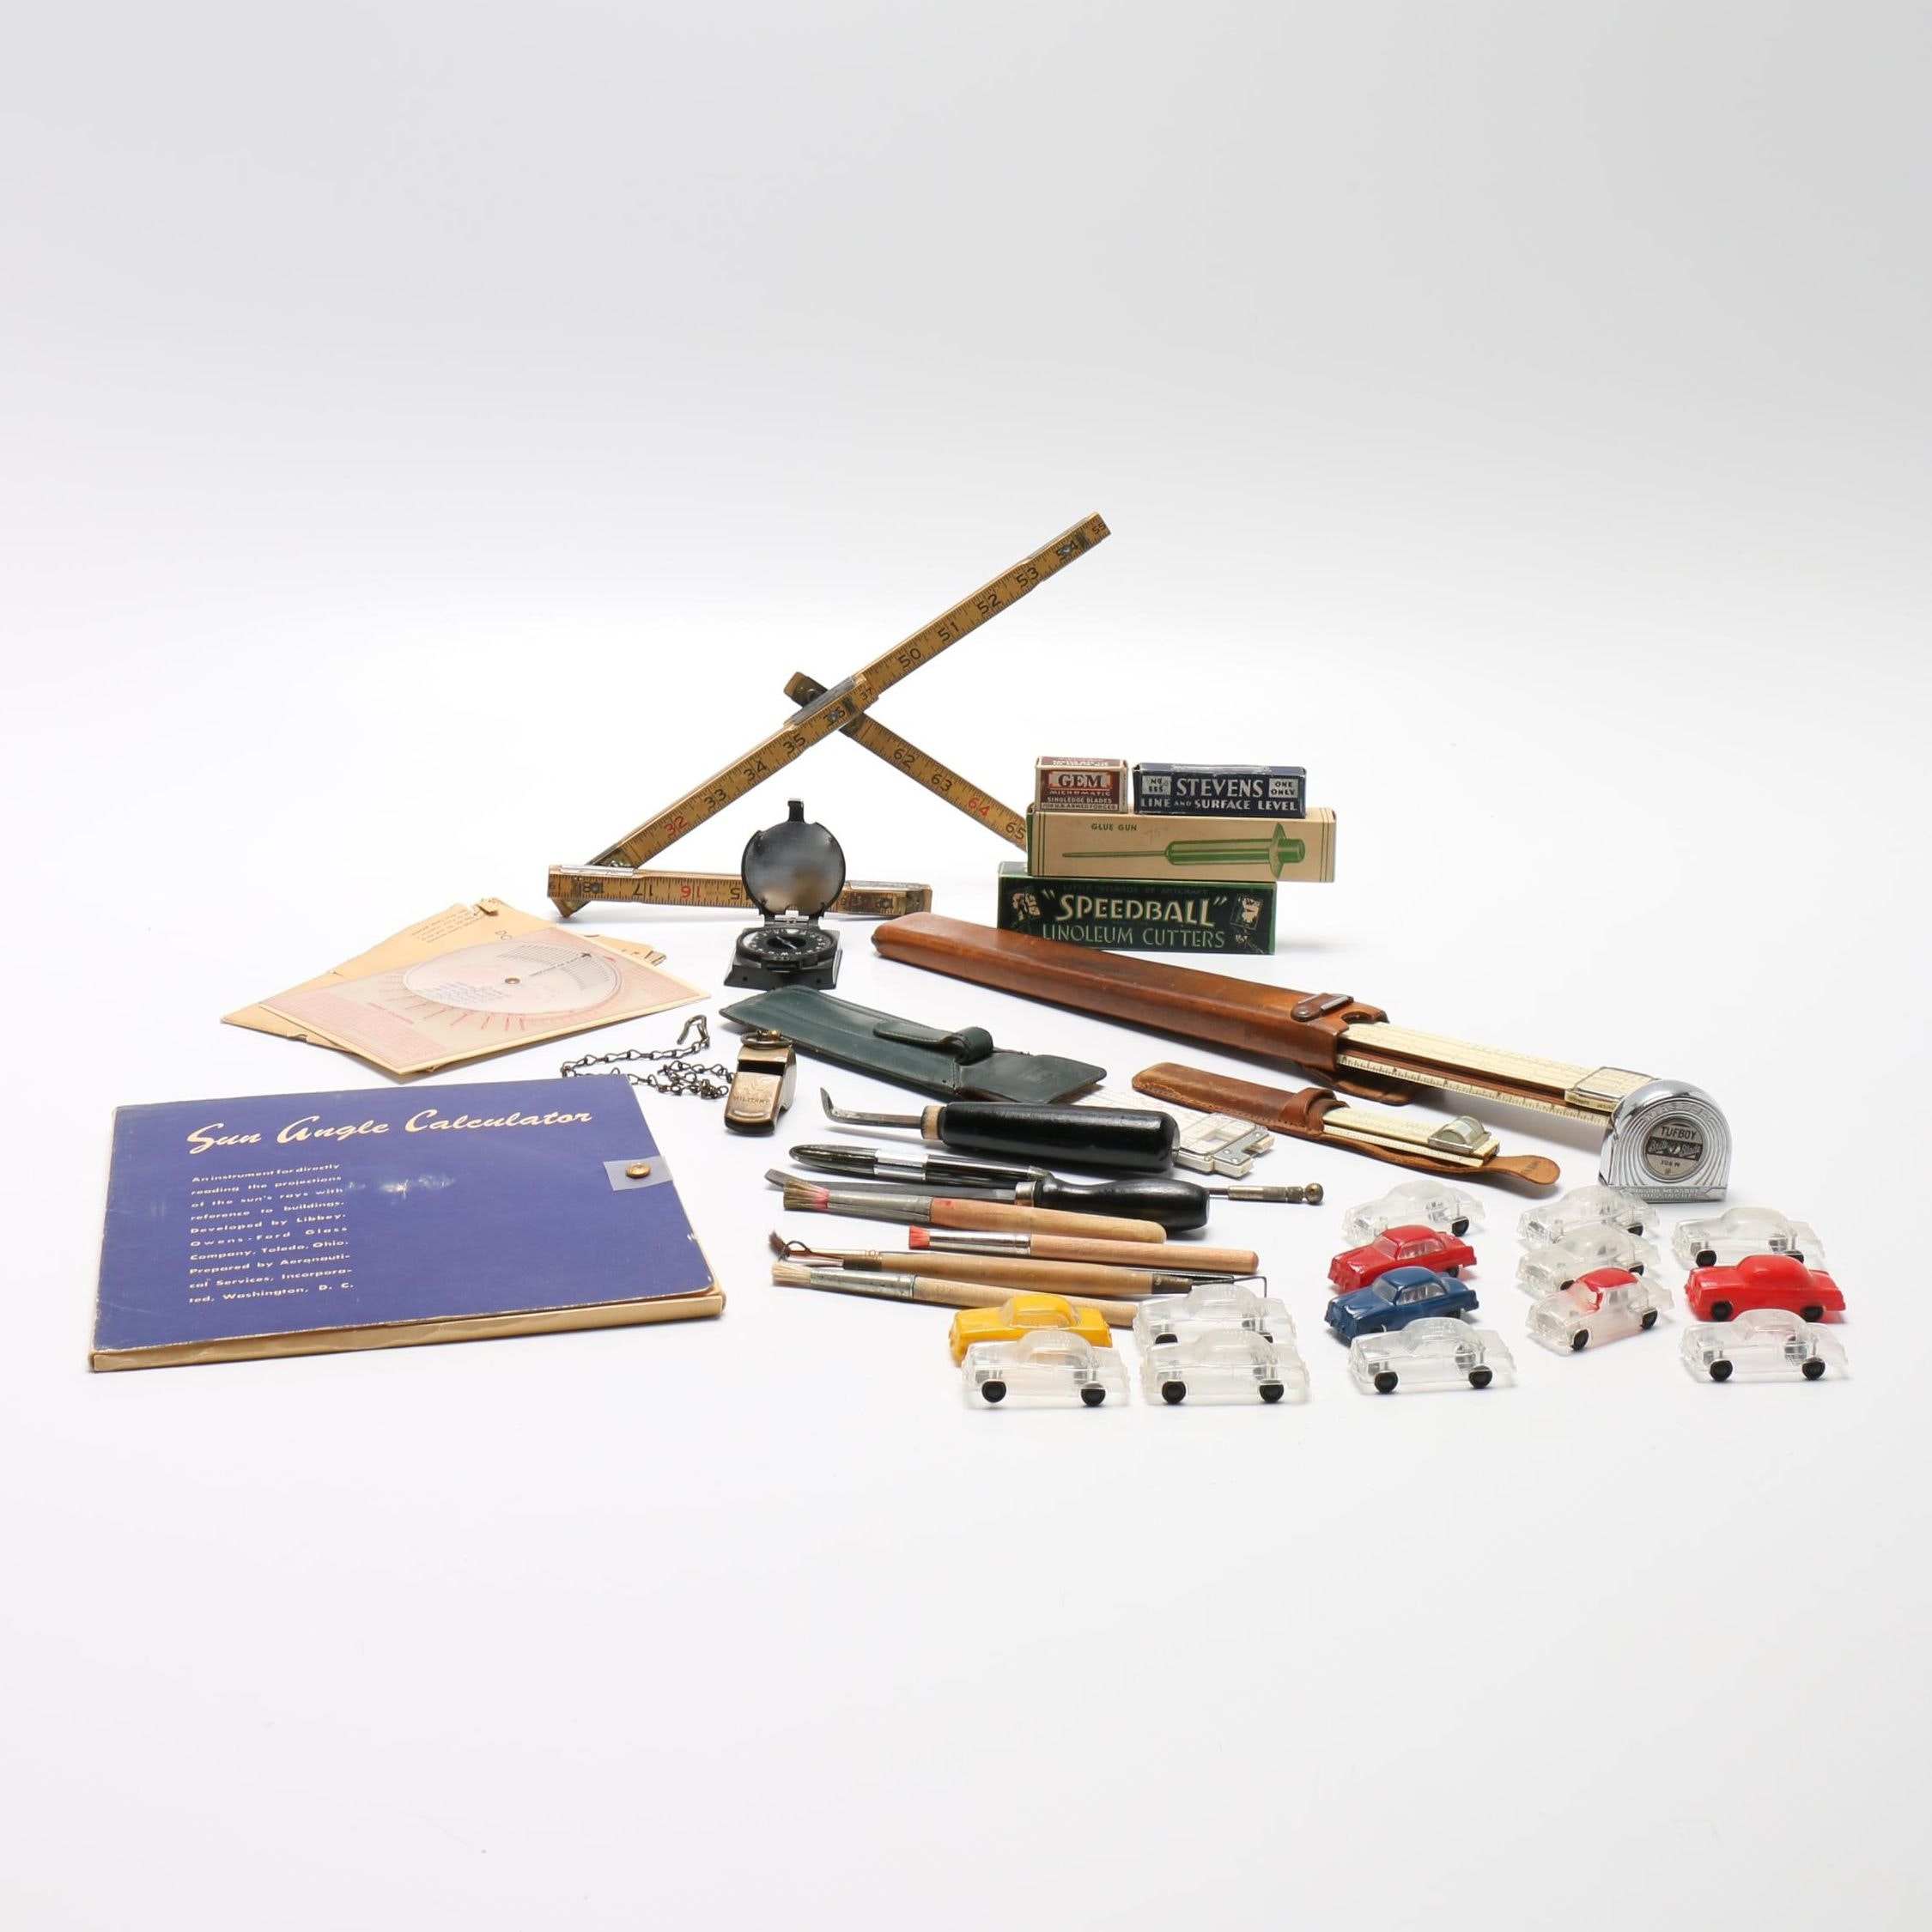 Slide Rules and Other Desktop Tools and Accessories